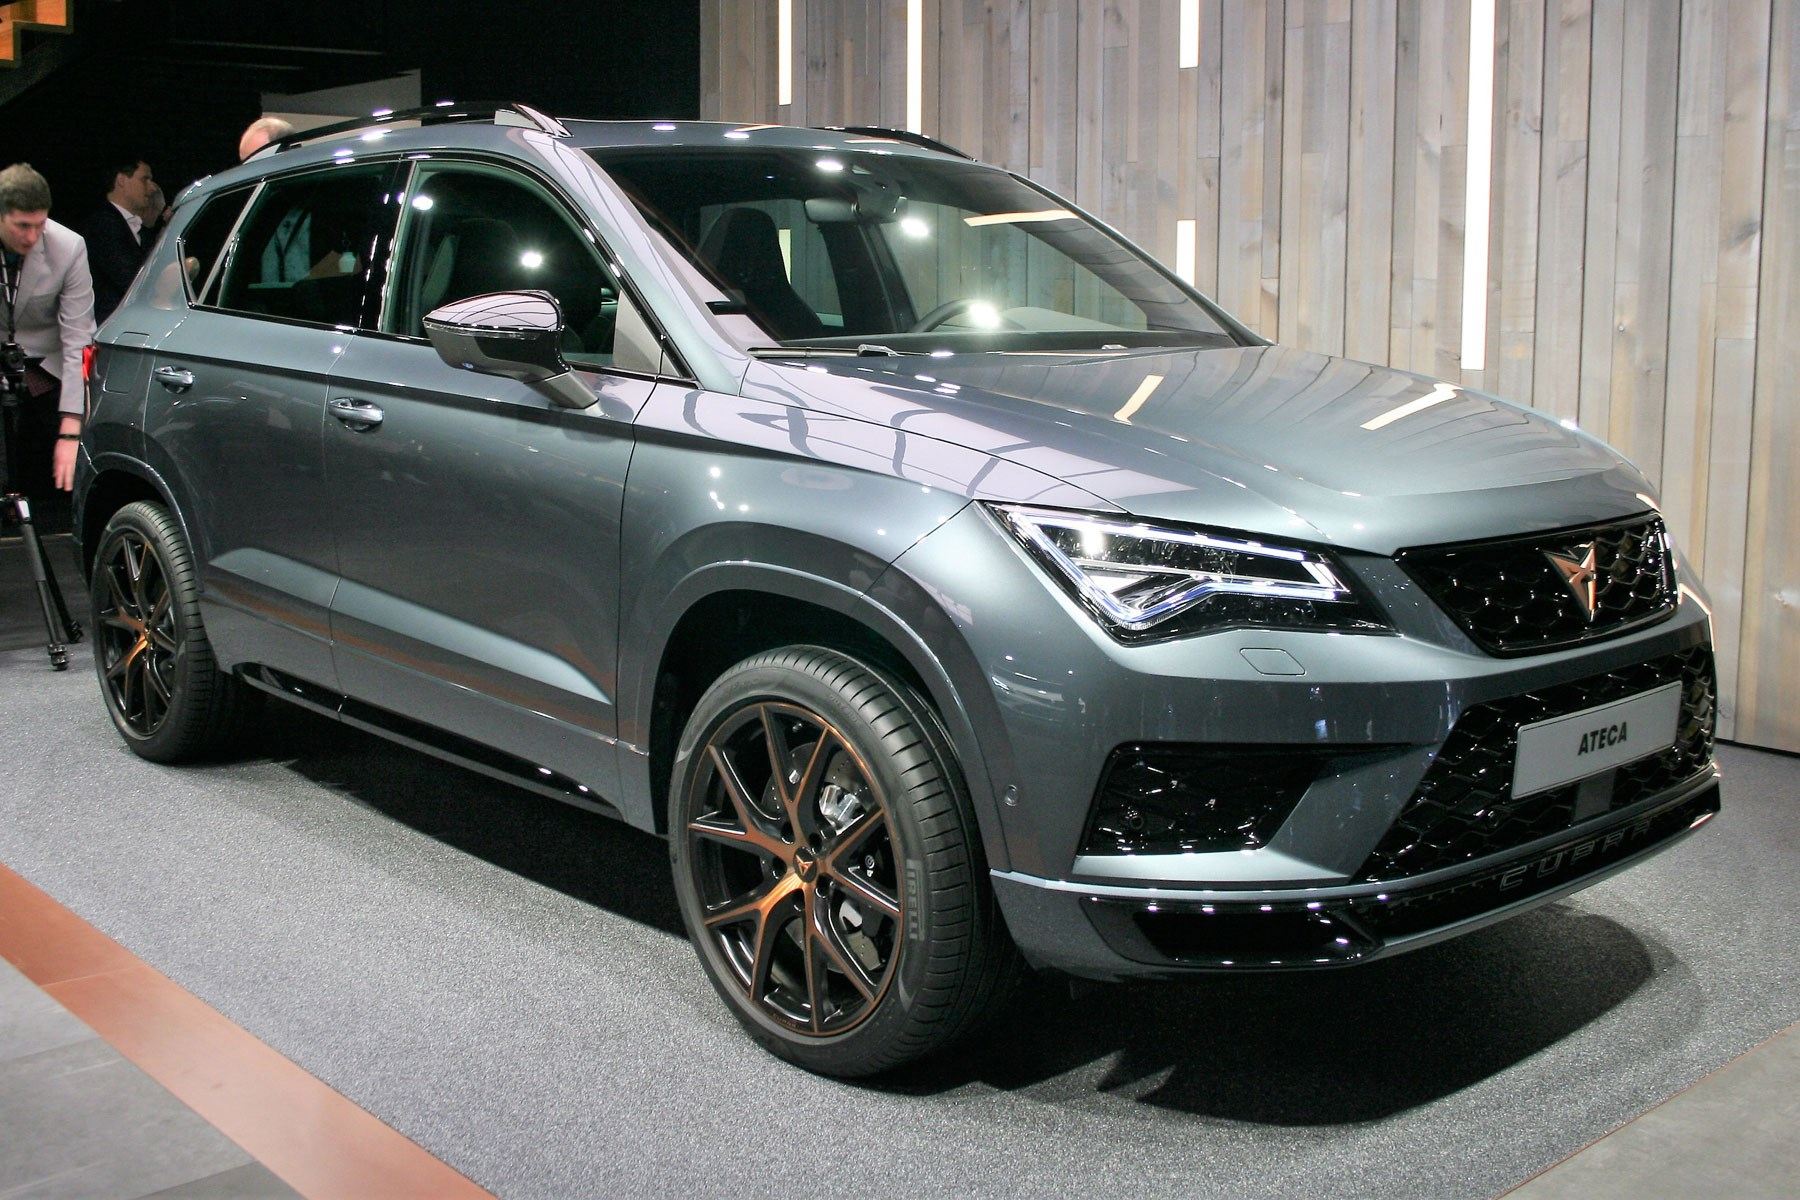 Cupra Ateca SUV: news, photos, prices, specs, on sale date ...